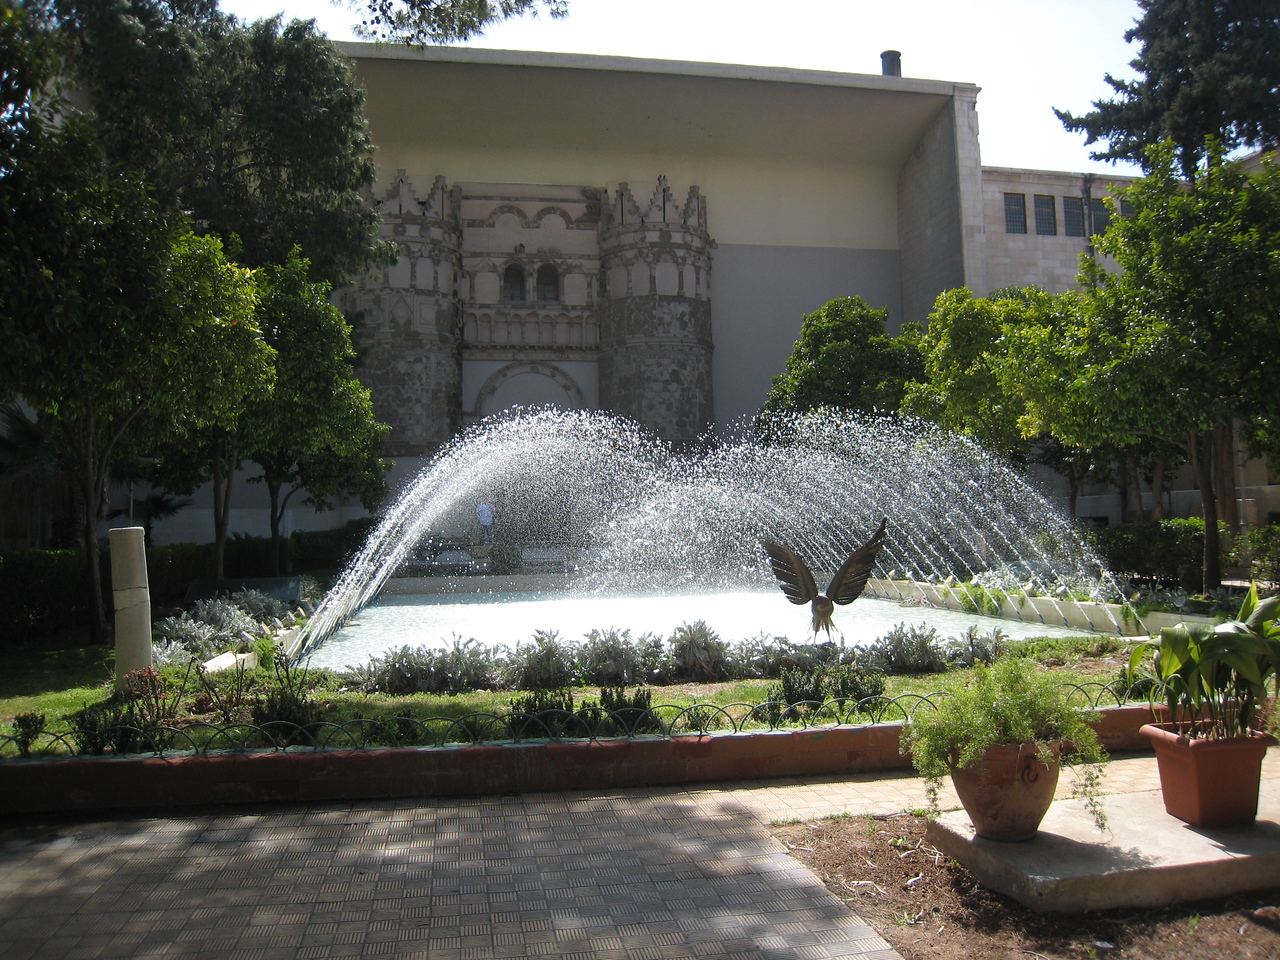 The water feature in the garden of the National Museum.  We sat and had a coffee and enjoyed the atmosphere after a long morning in the museum.  The highlight of the museum is a reconstructed synagogue which was moved section by section (not unlike Abu Simbel) to the museum.  Its unique in that it has frescos showing human figures, depiction of the human form in Talmadic tradition is banned.